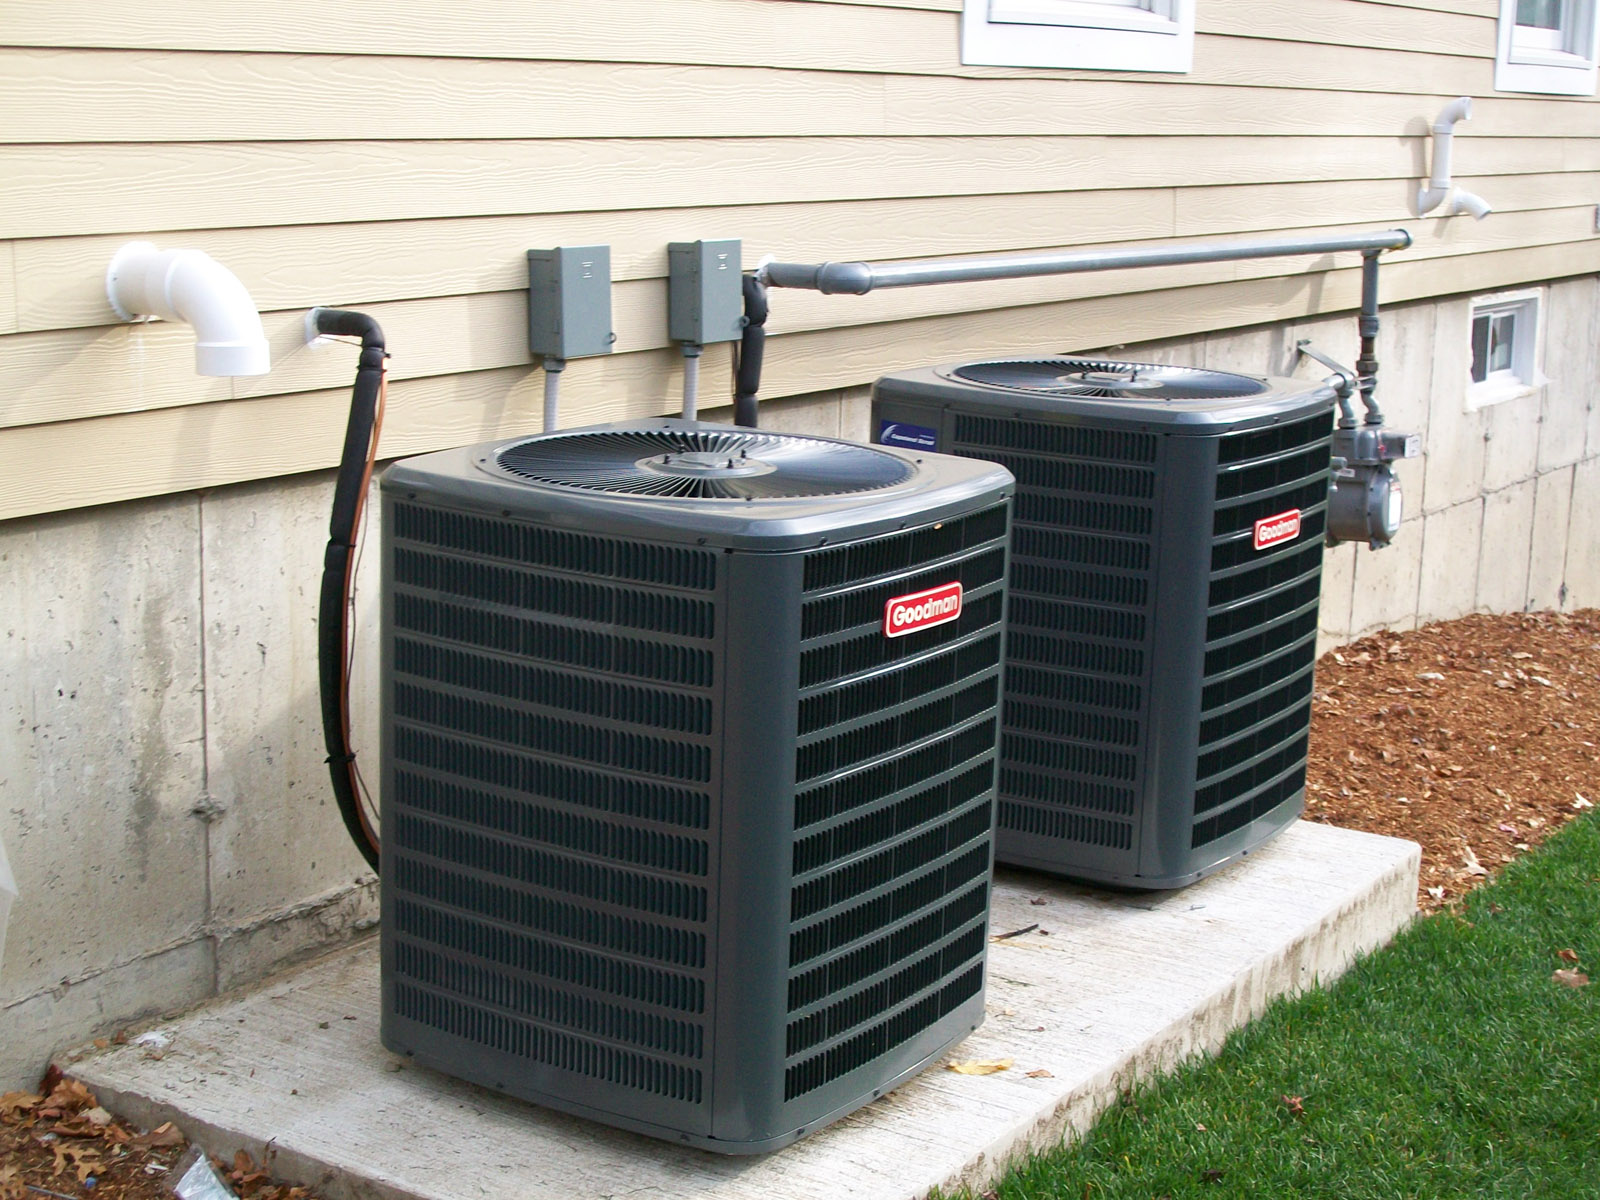 Goodman heating and air conditioning systems